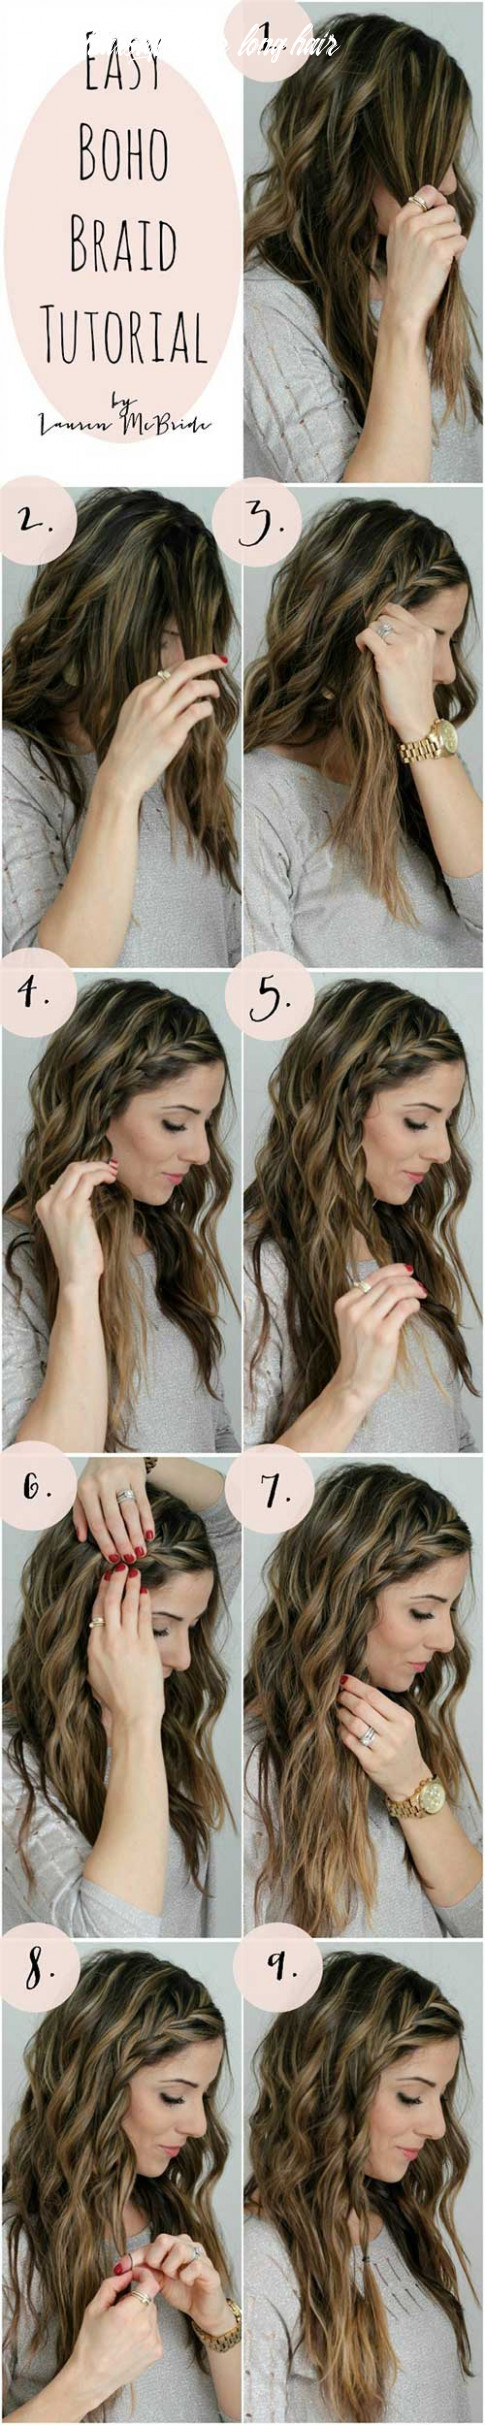 9 awesome hairstyles for girls with long hair quick hairstyles for long hair